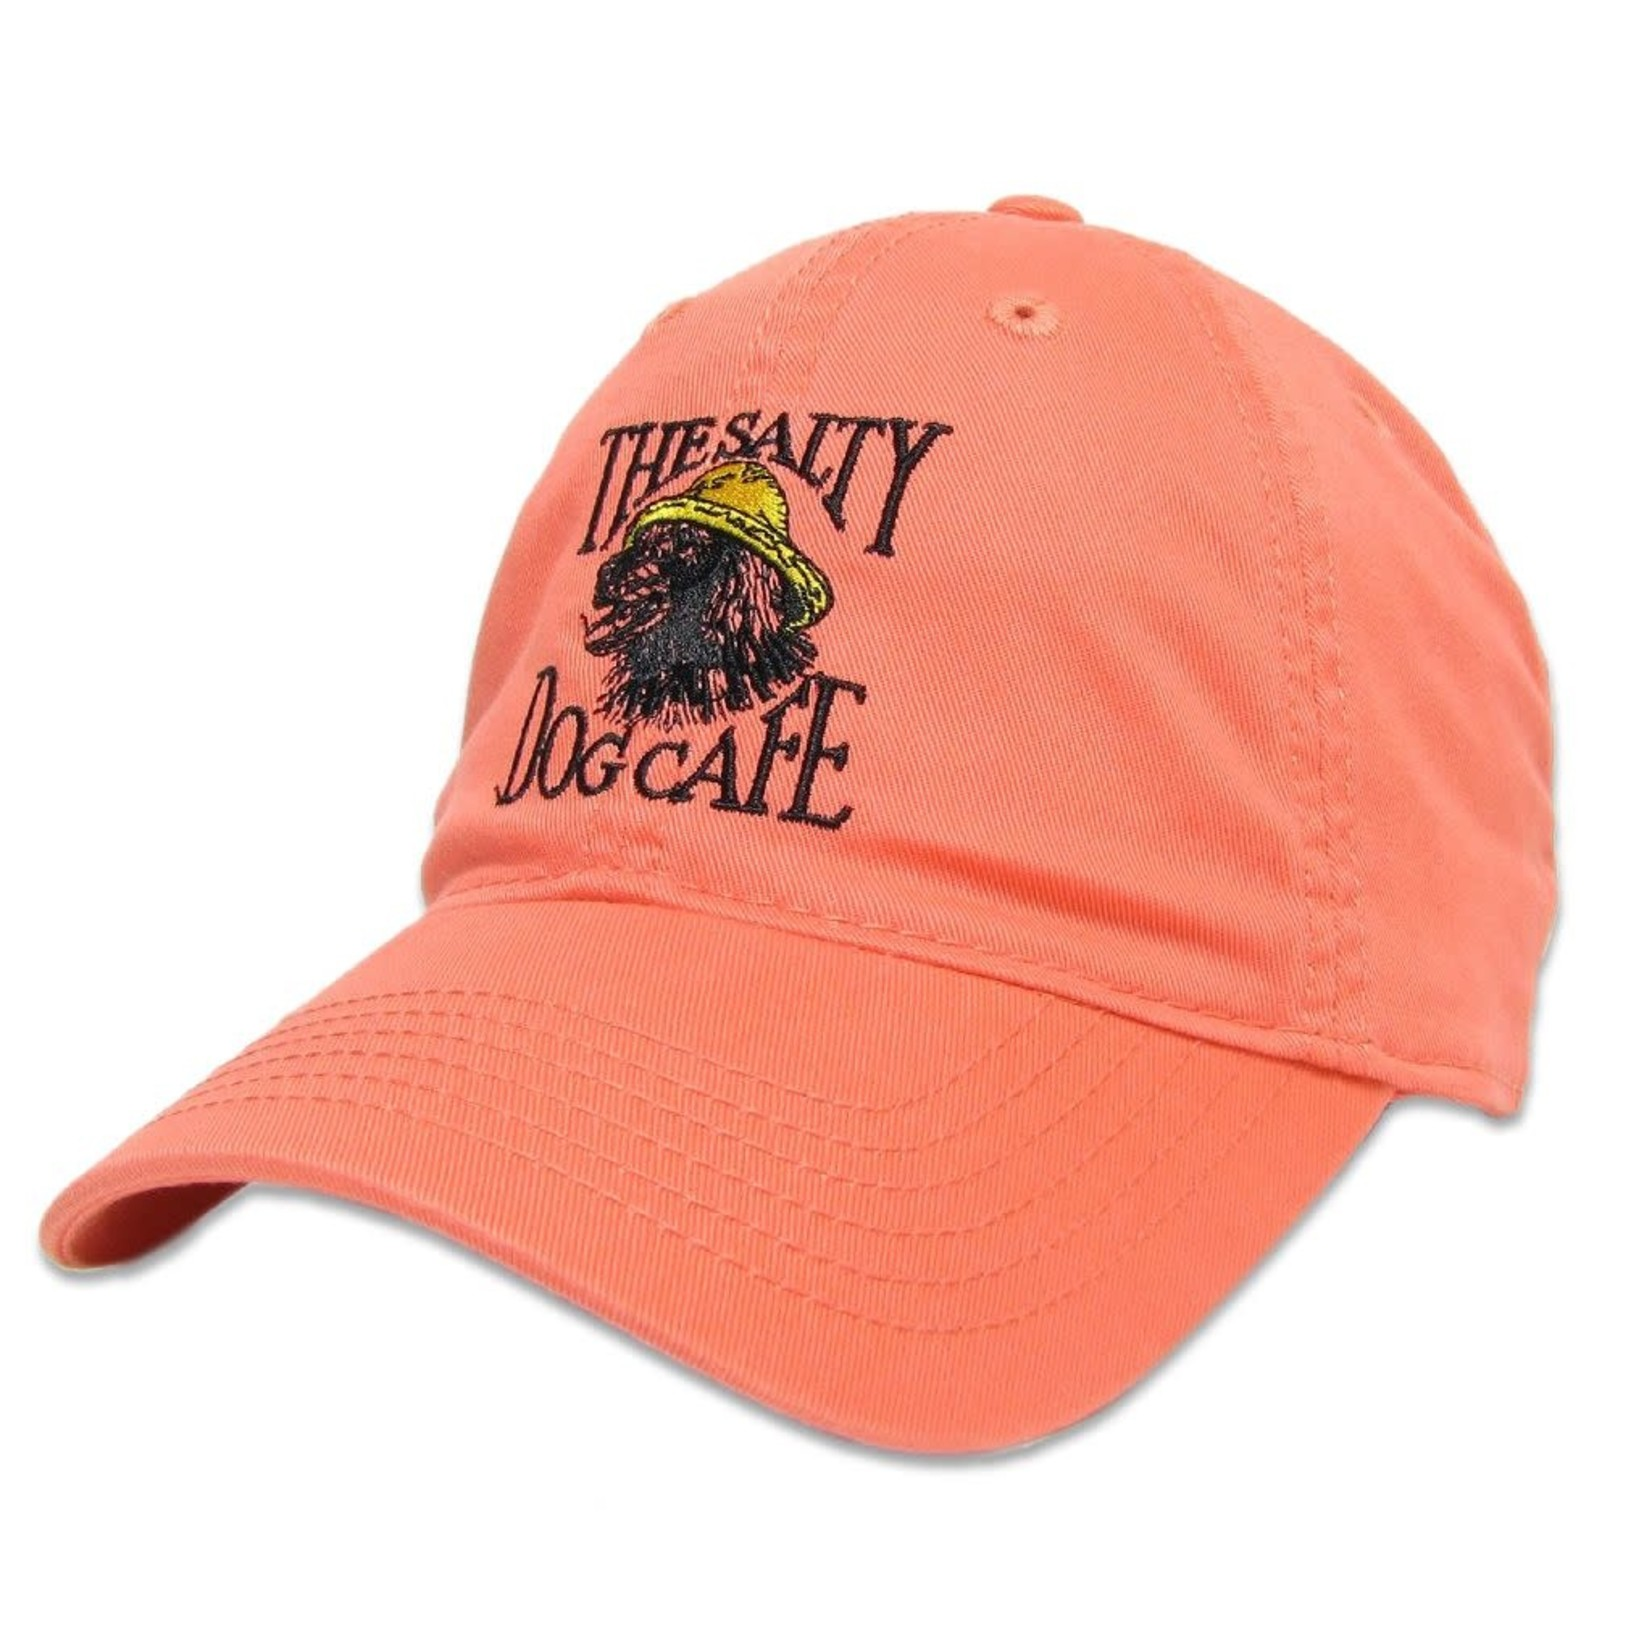 Hat - Relaxed Twill - Vintage, Coral, Adult